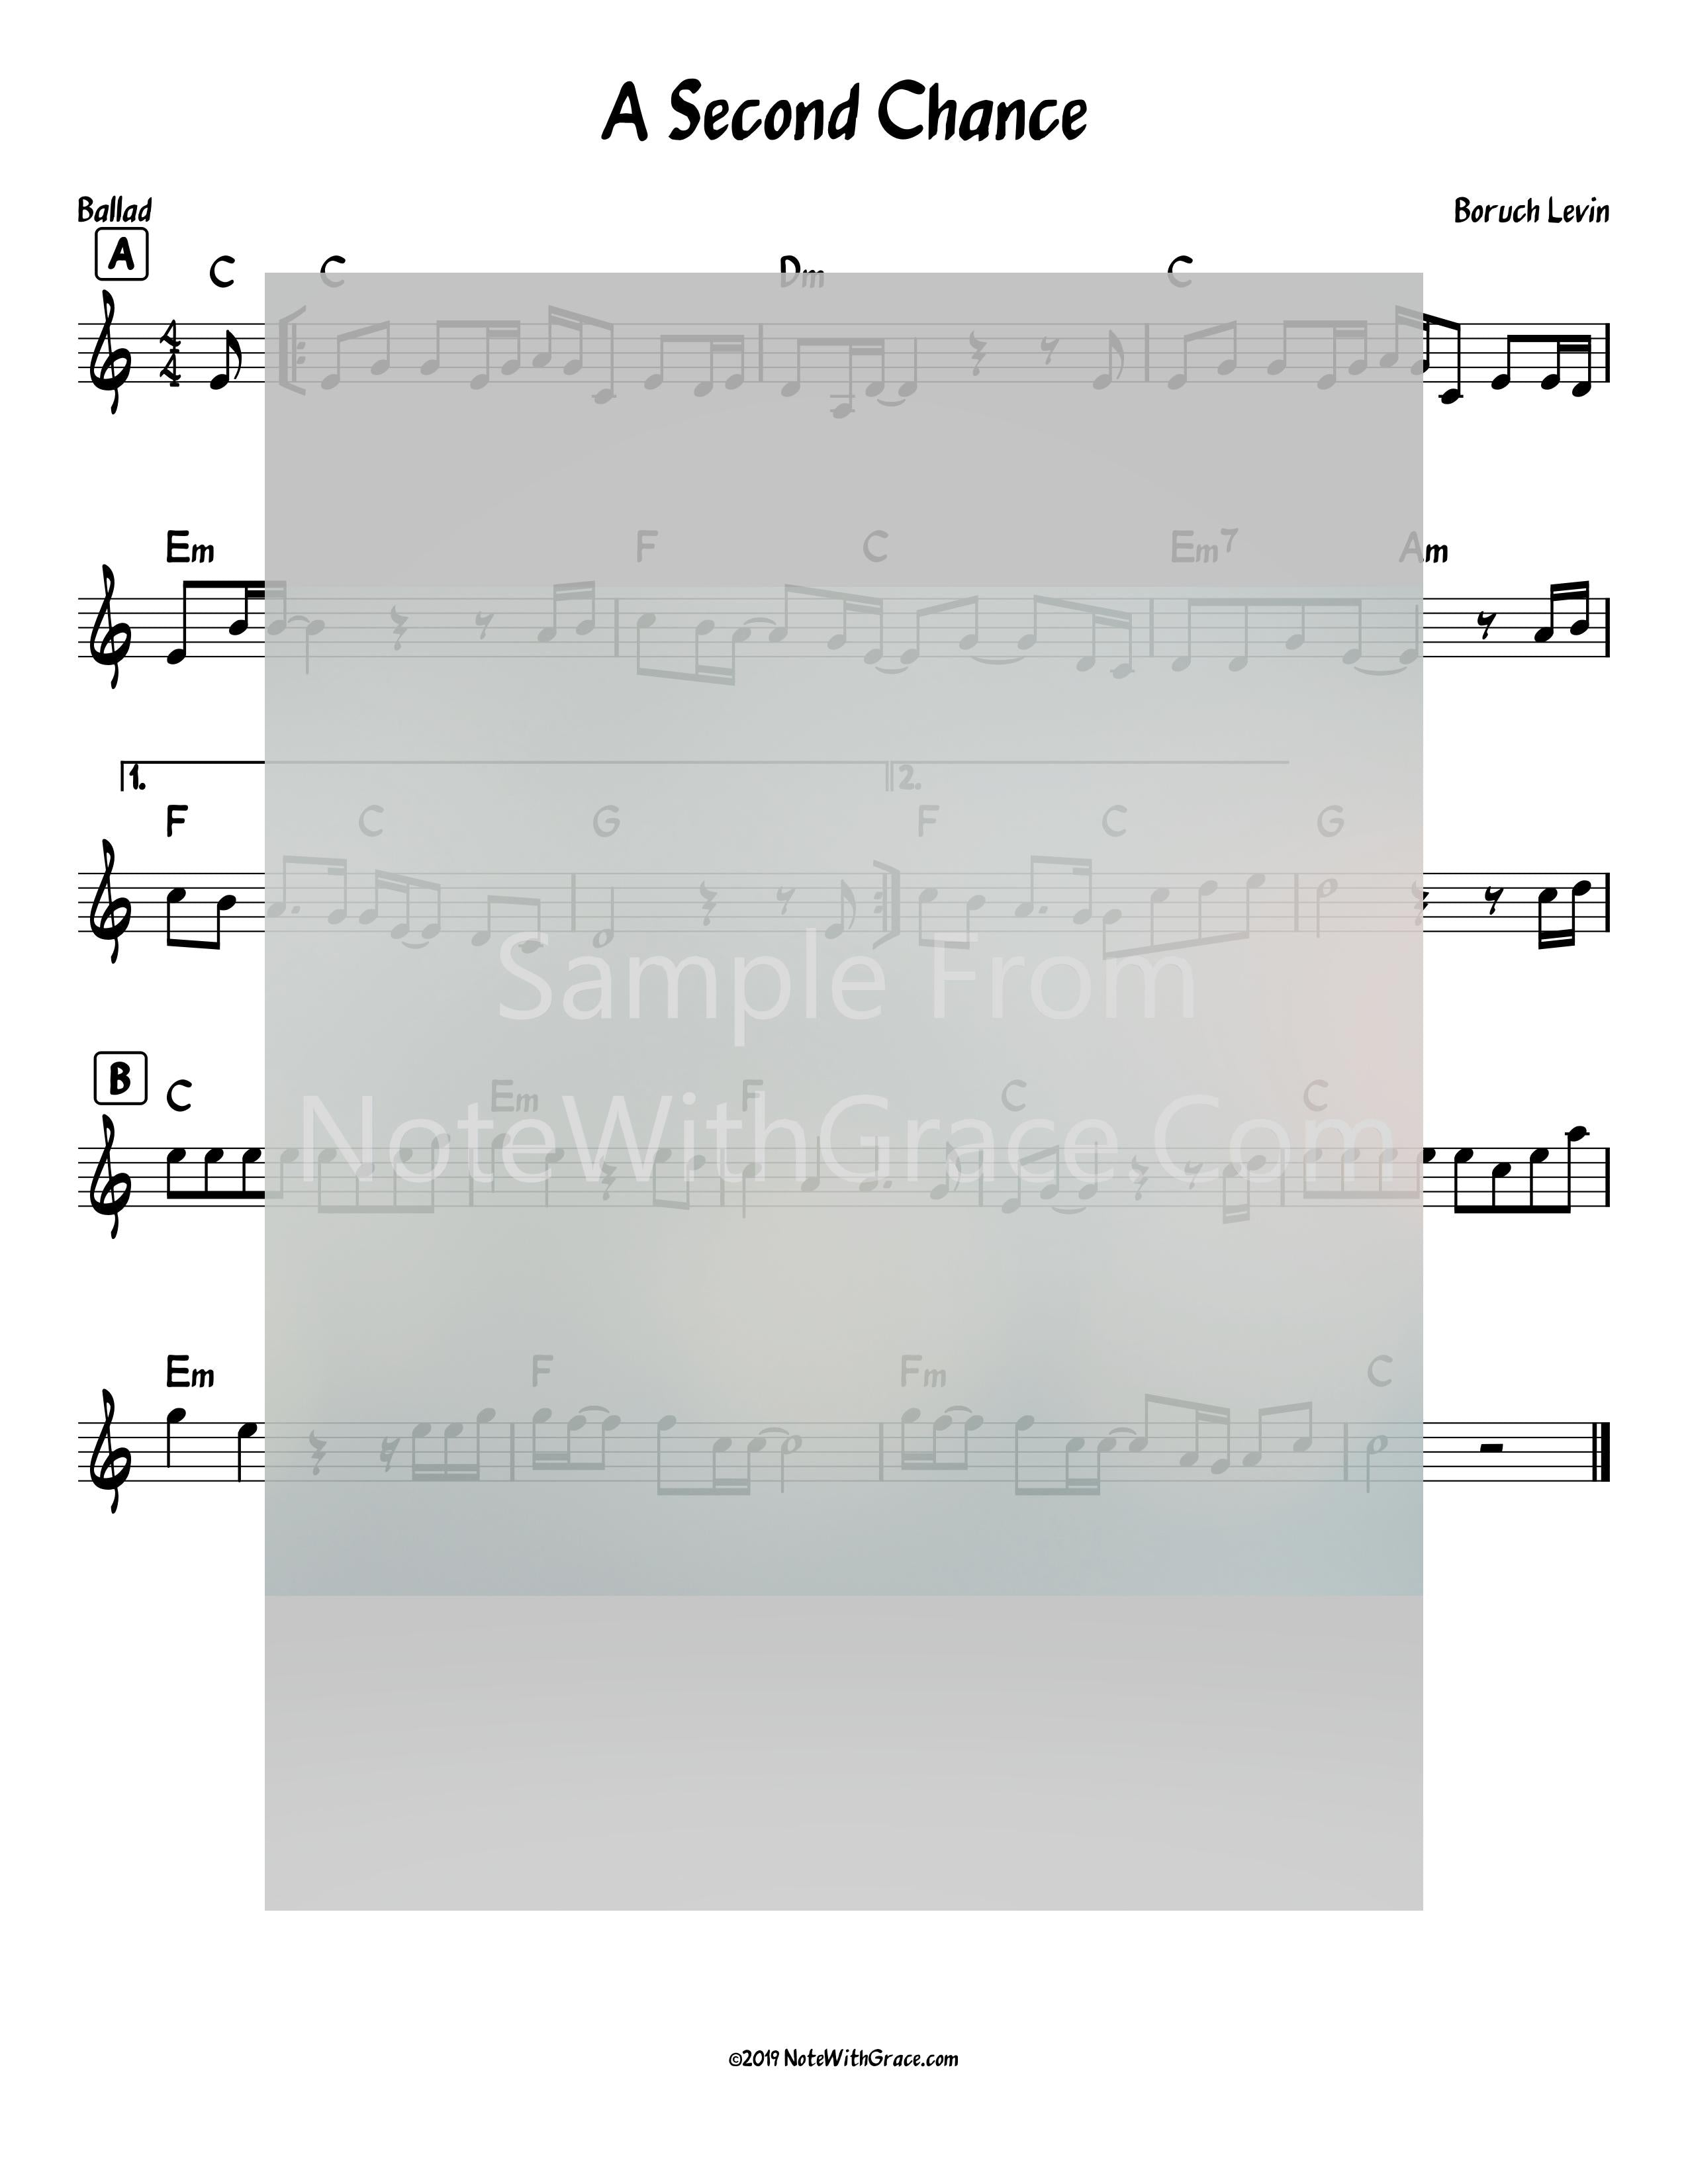 A Second Chance Lead Sheet (Baruch Levine) Album Peduscha Released 2018-Sheet music-NoteWithGrace.com